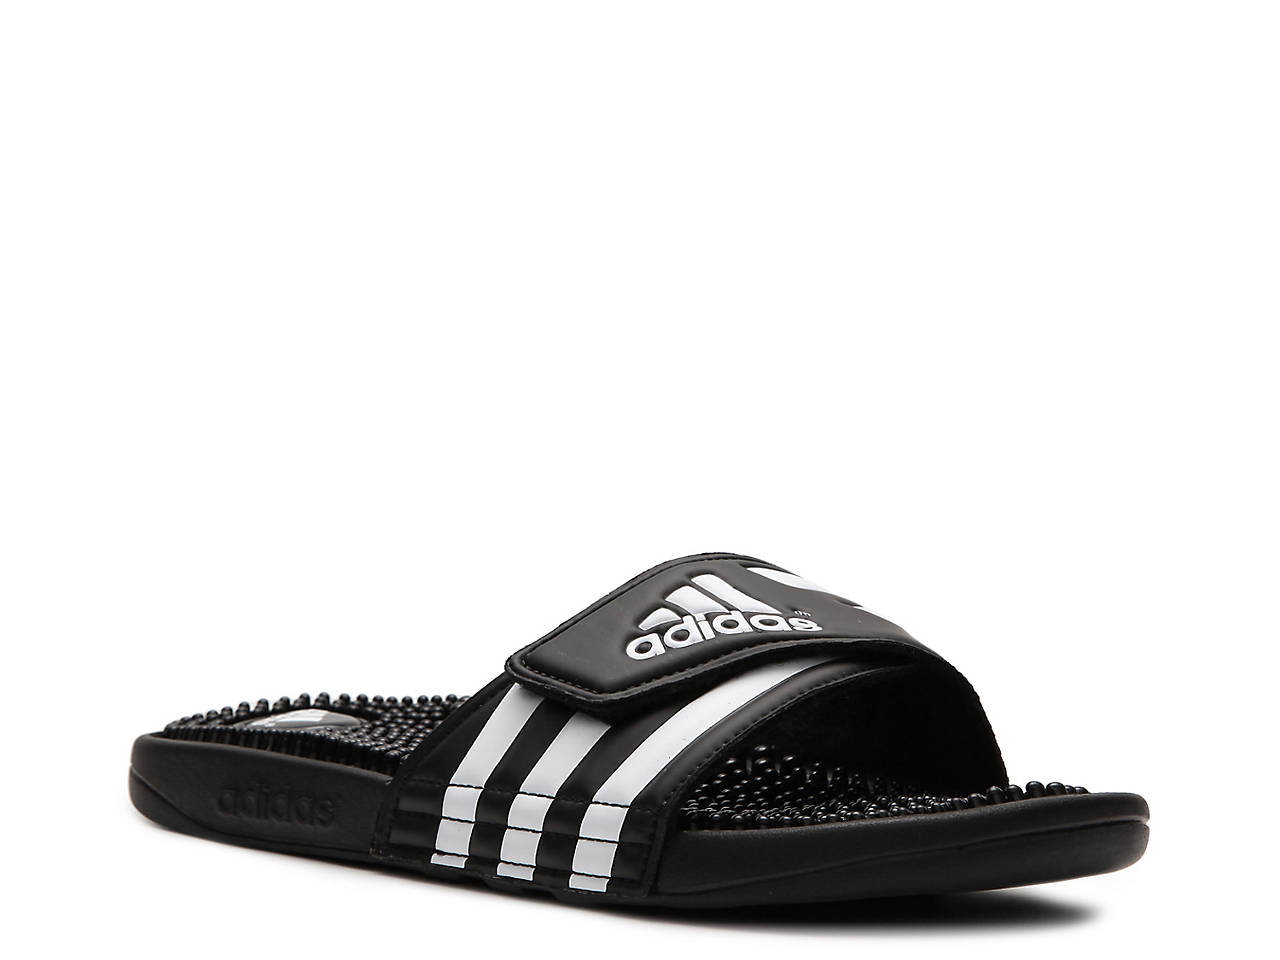 premium selection e218f 338e3 adidas. Adissage Slide Sandal - Men s